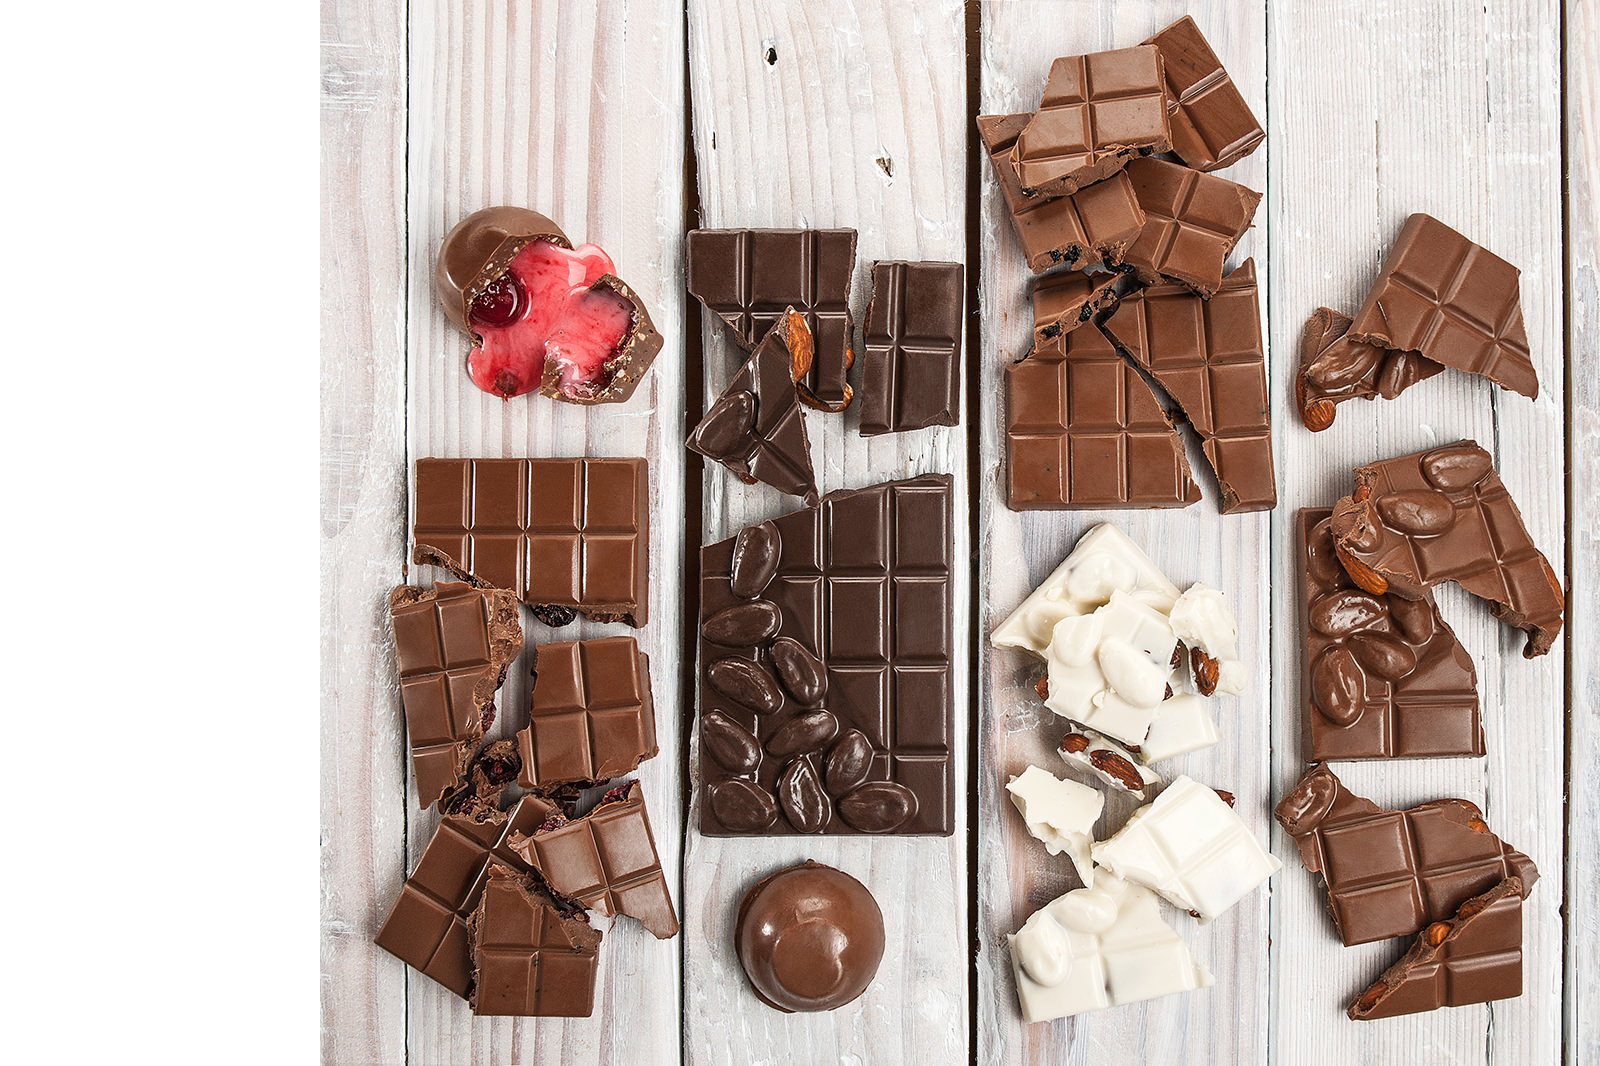 Background Image Chocolates